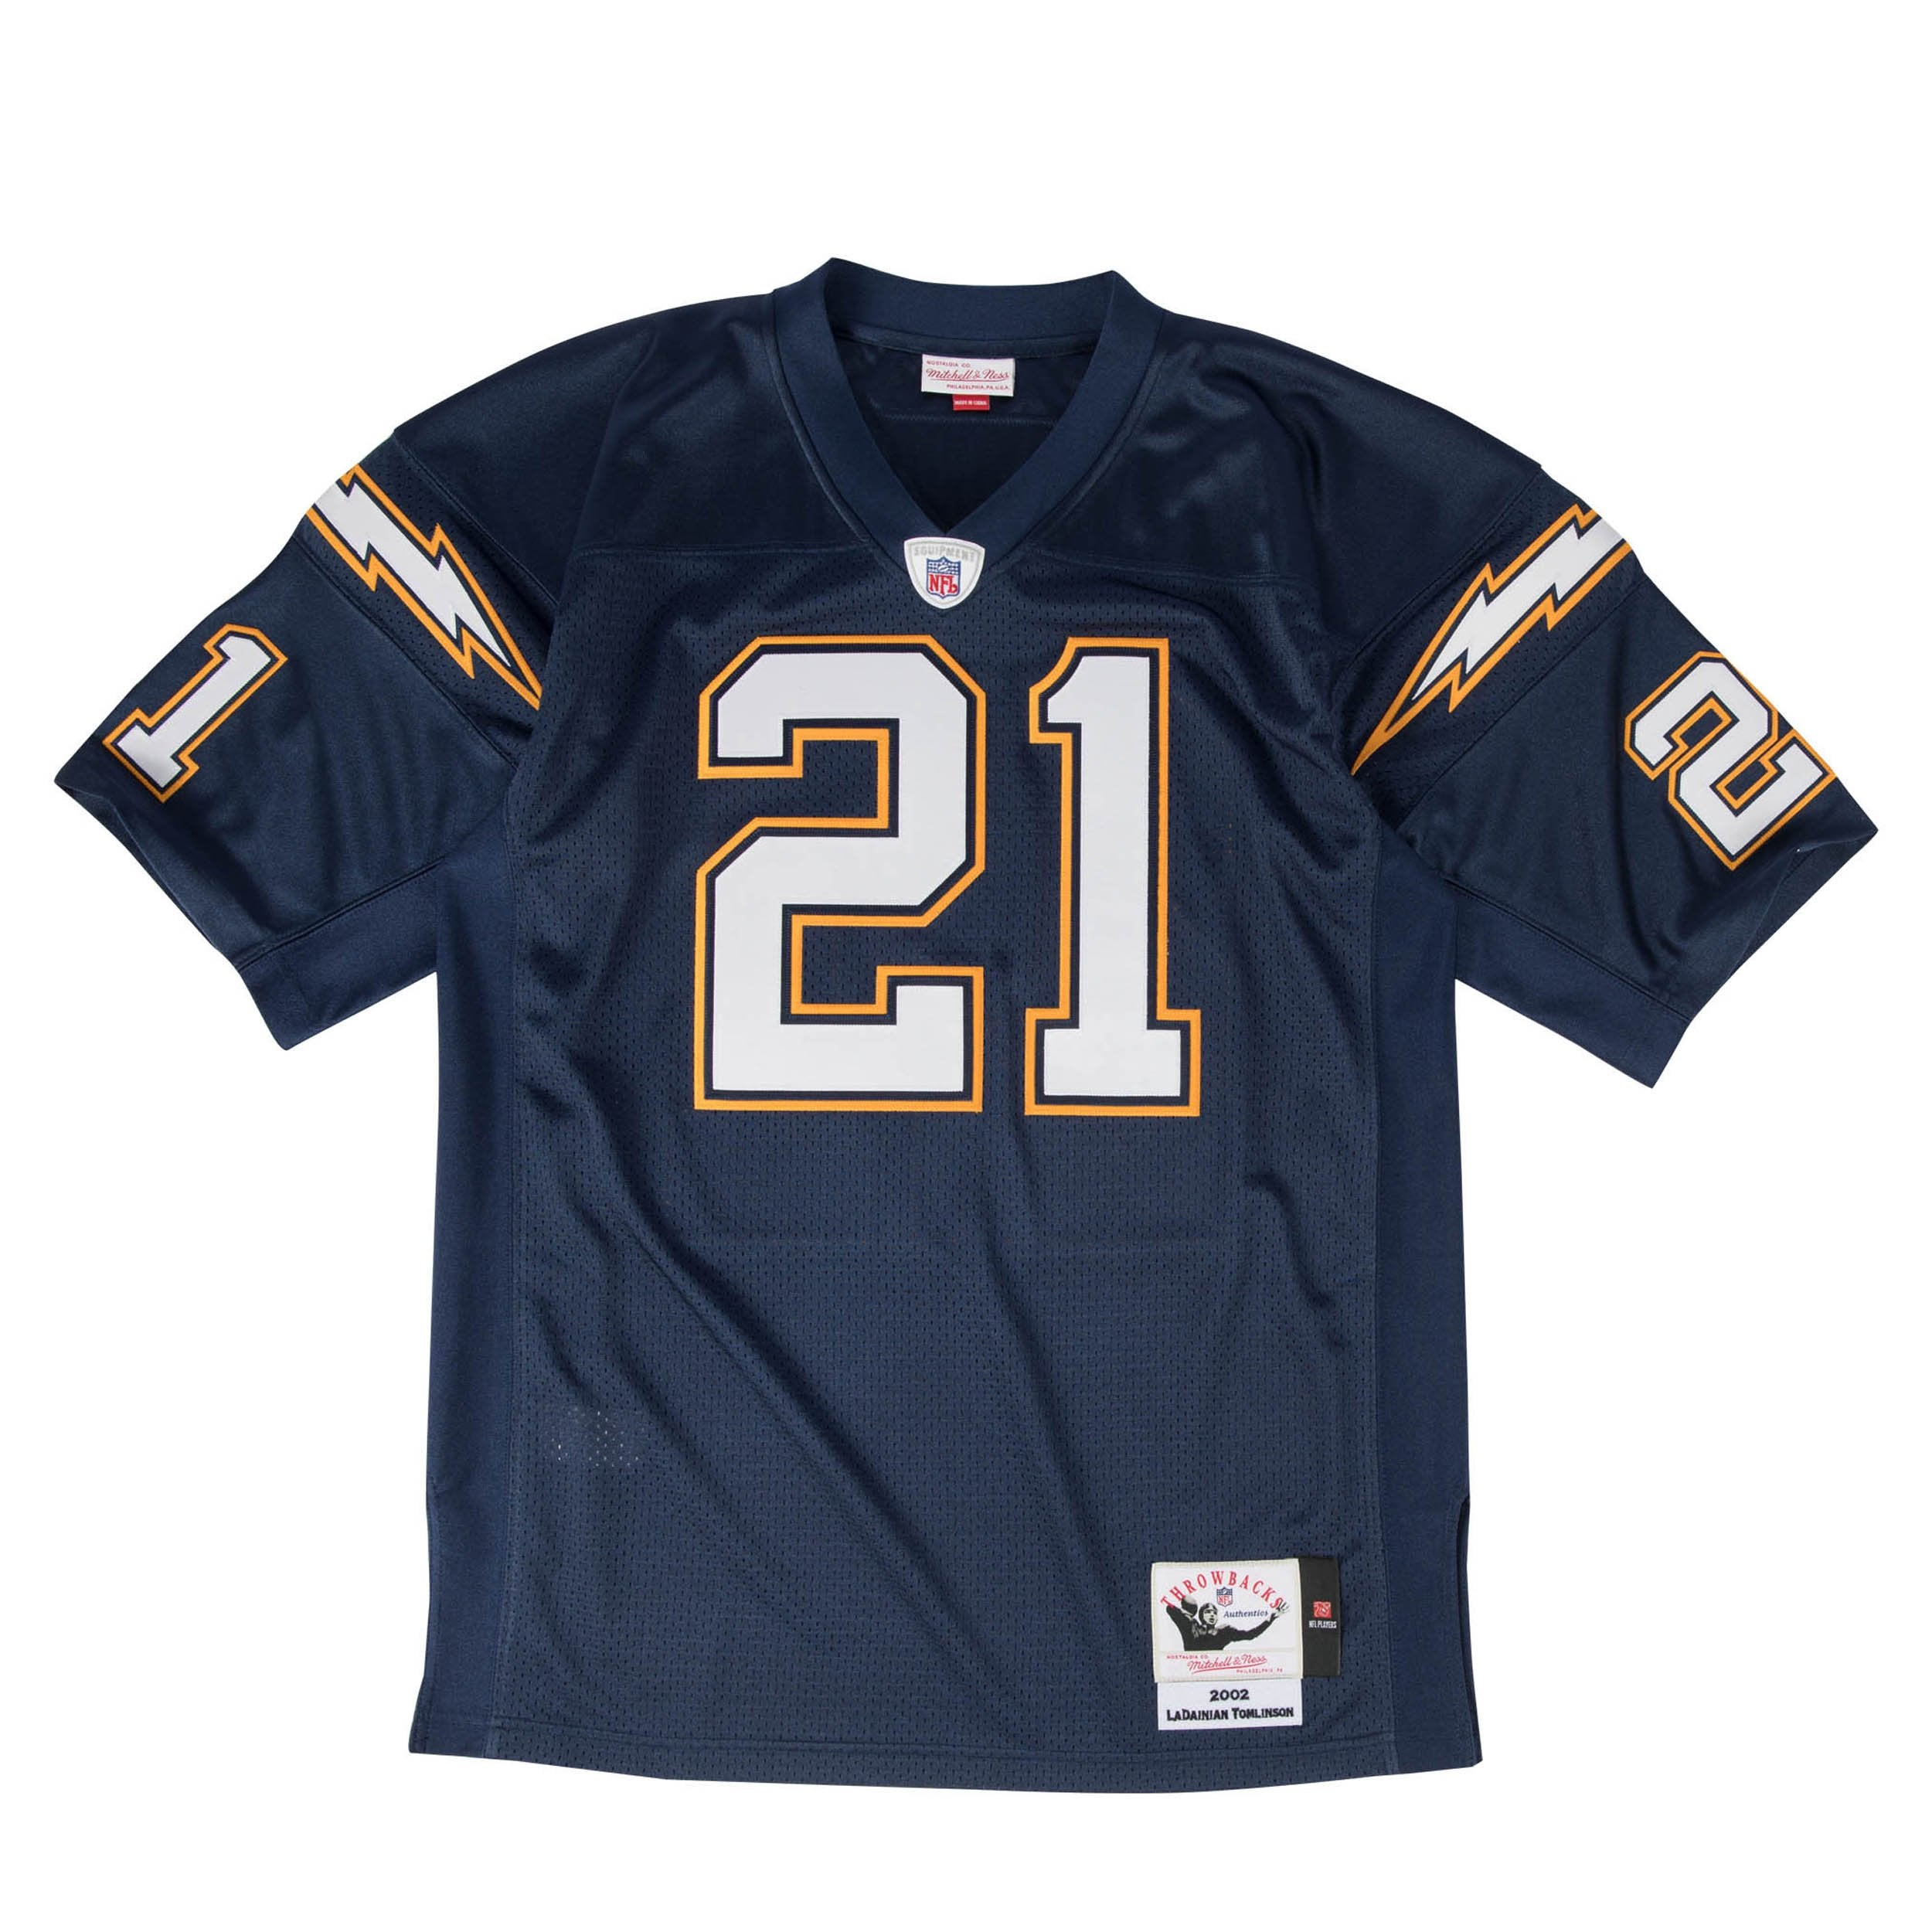 separation shoes 30339 687d1 Mitchell & Ness LaDainian Tomlinson Authentic Jersey 2002 San Diego Chargers